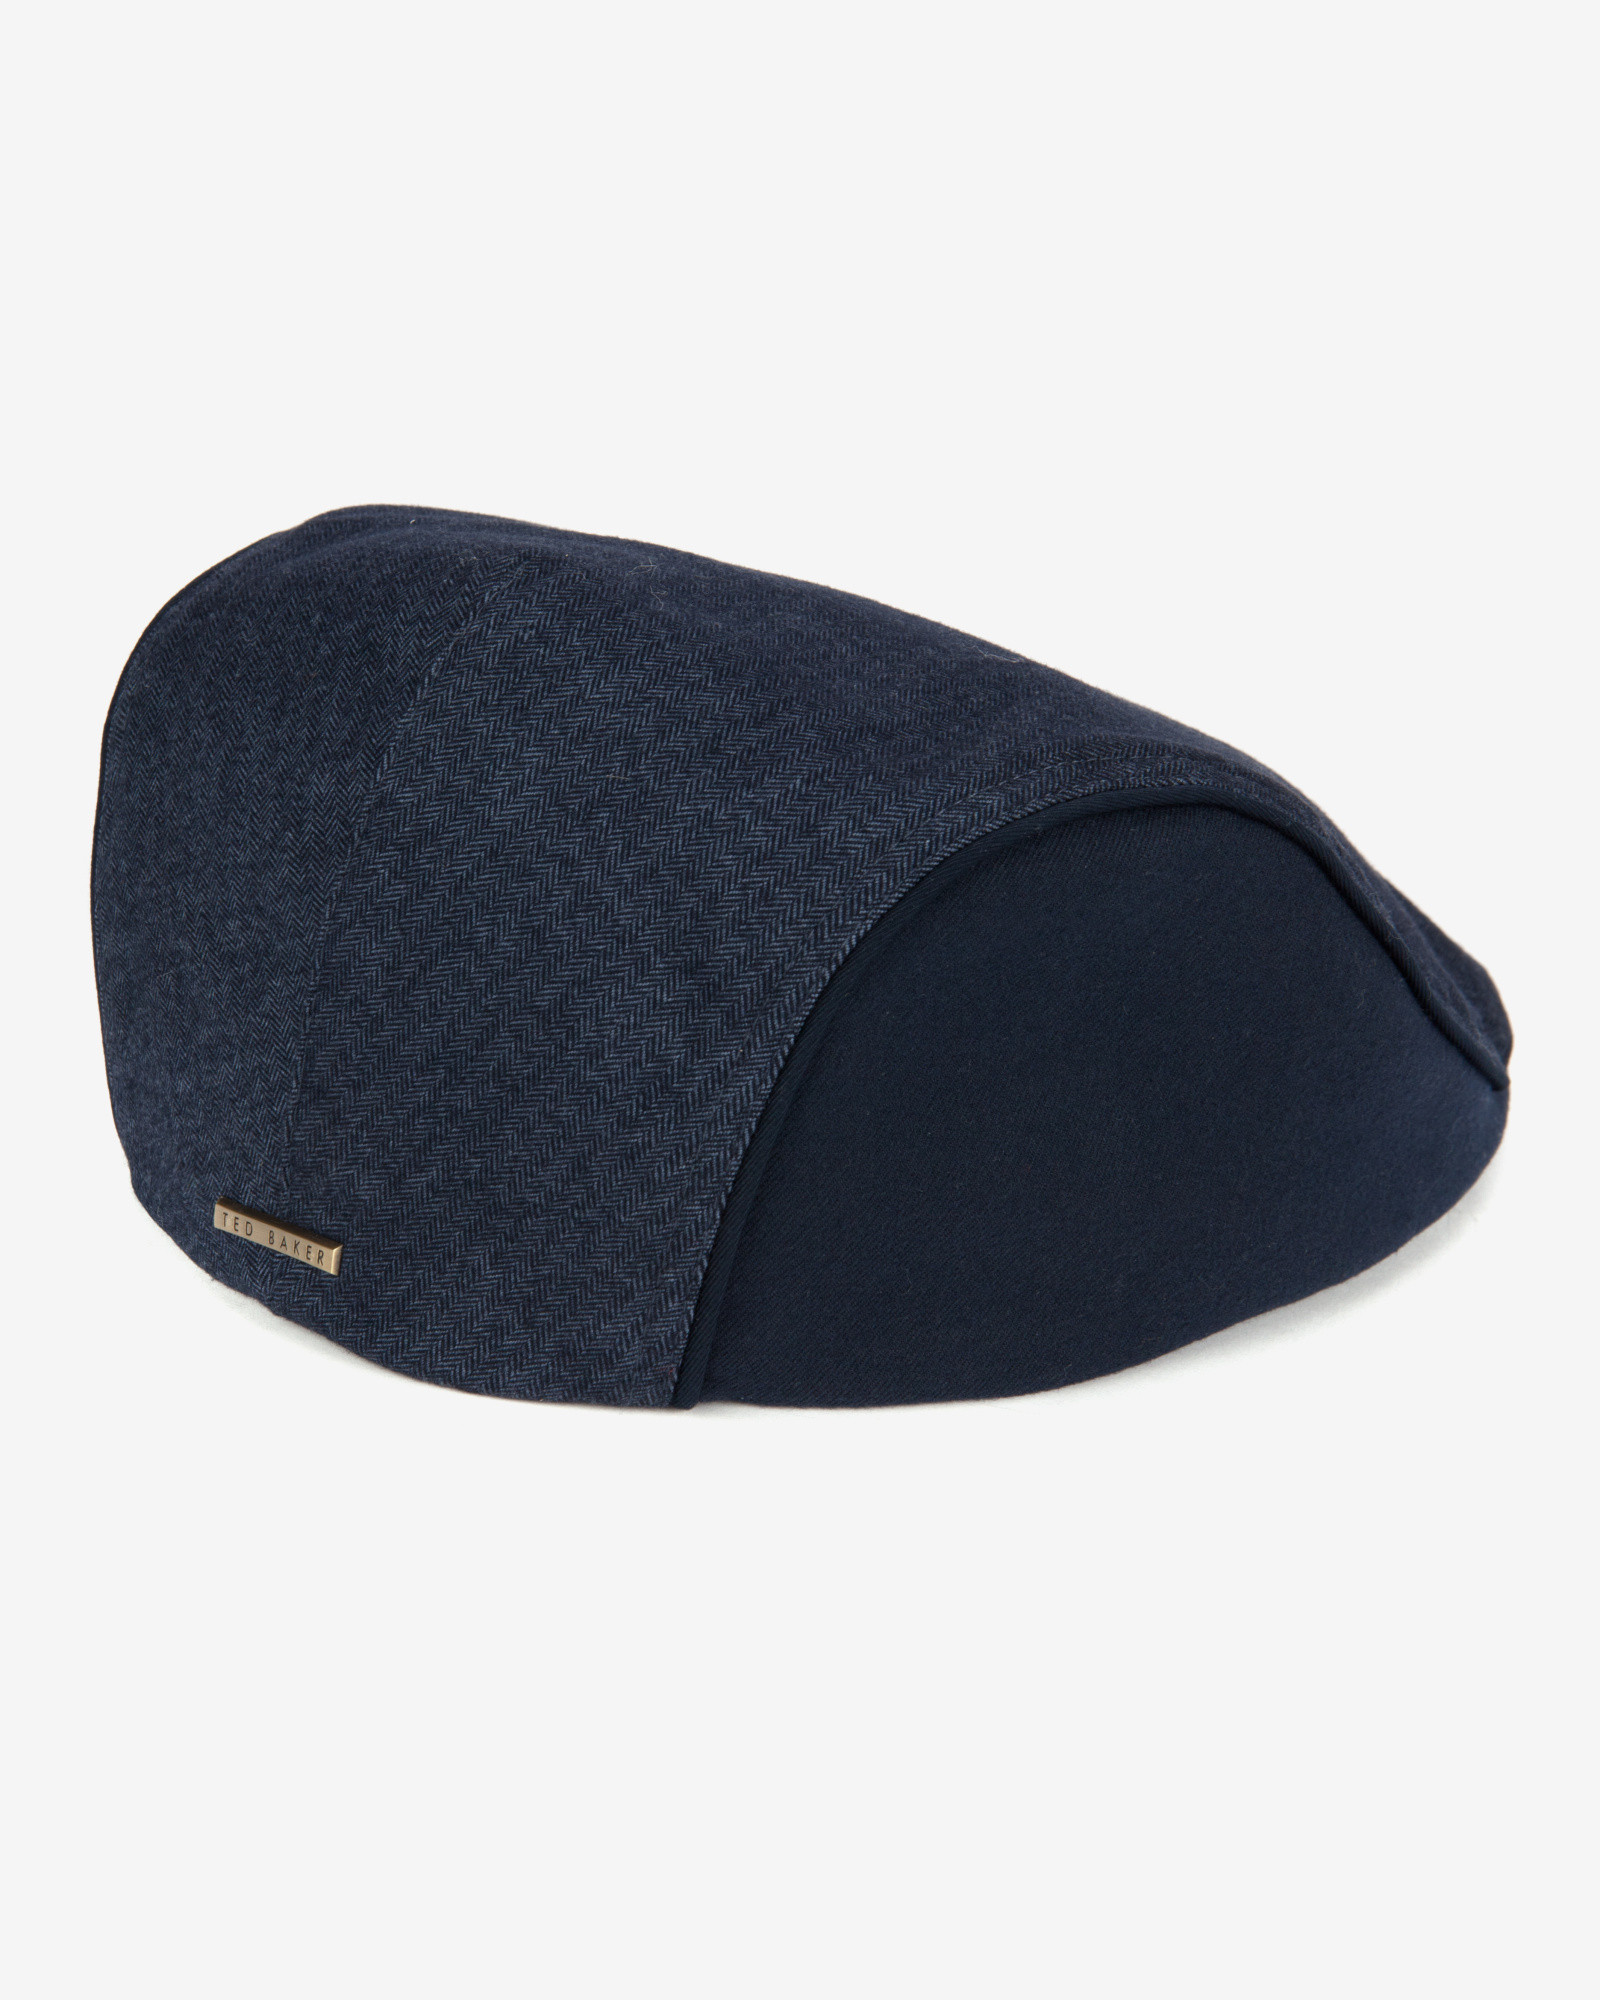 f4cdde1723d49 Ted Baker Herringbone Flat Cap in Blue for Men - Lyst